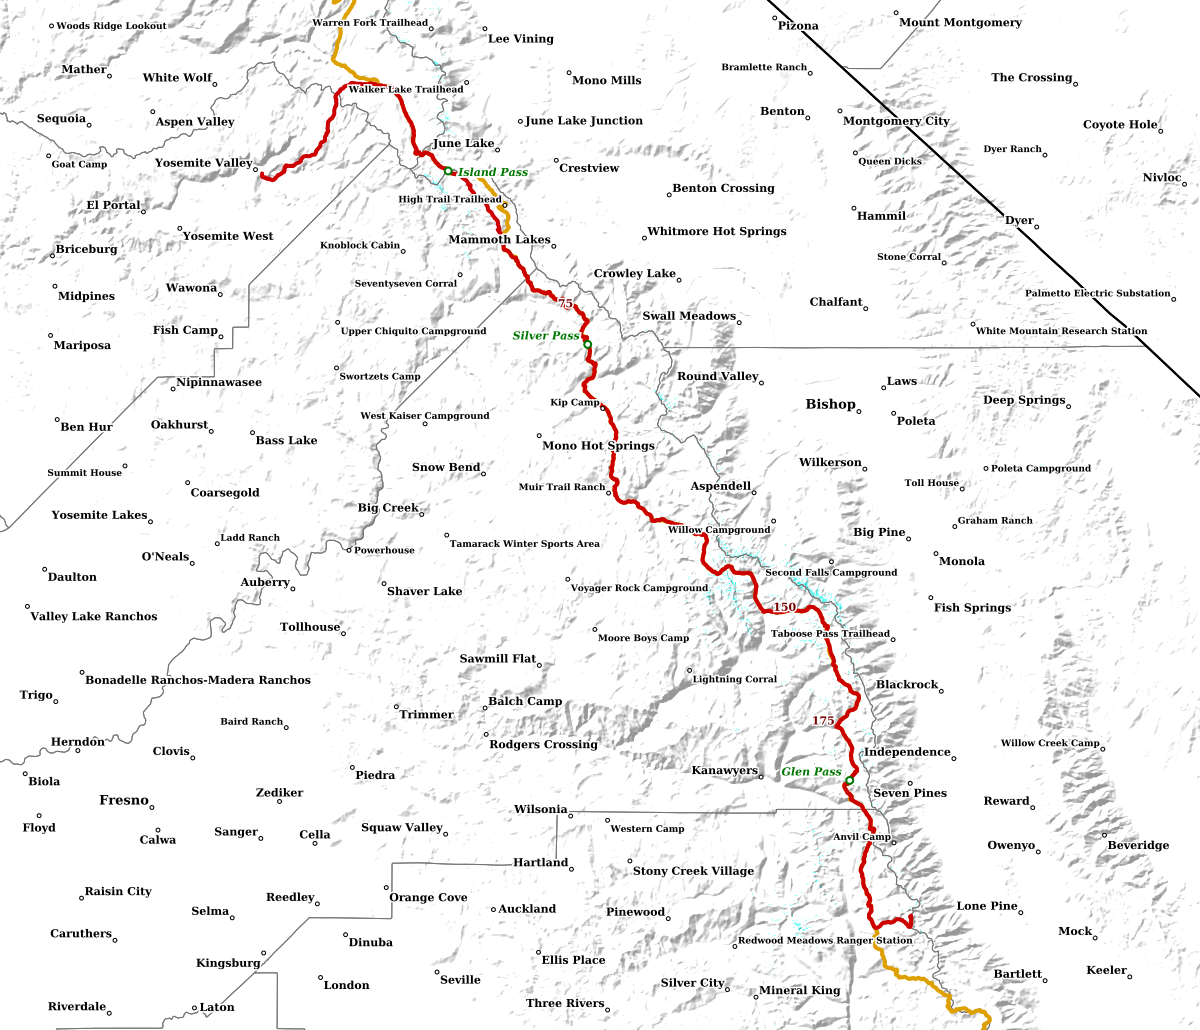 John Muir Trail Sentinel-2 20m (~65 feet) snow cover, Crabtree Mdw to Tuolumne Mdw